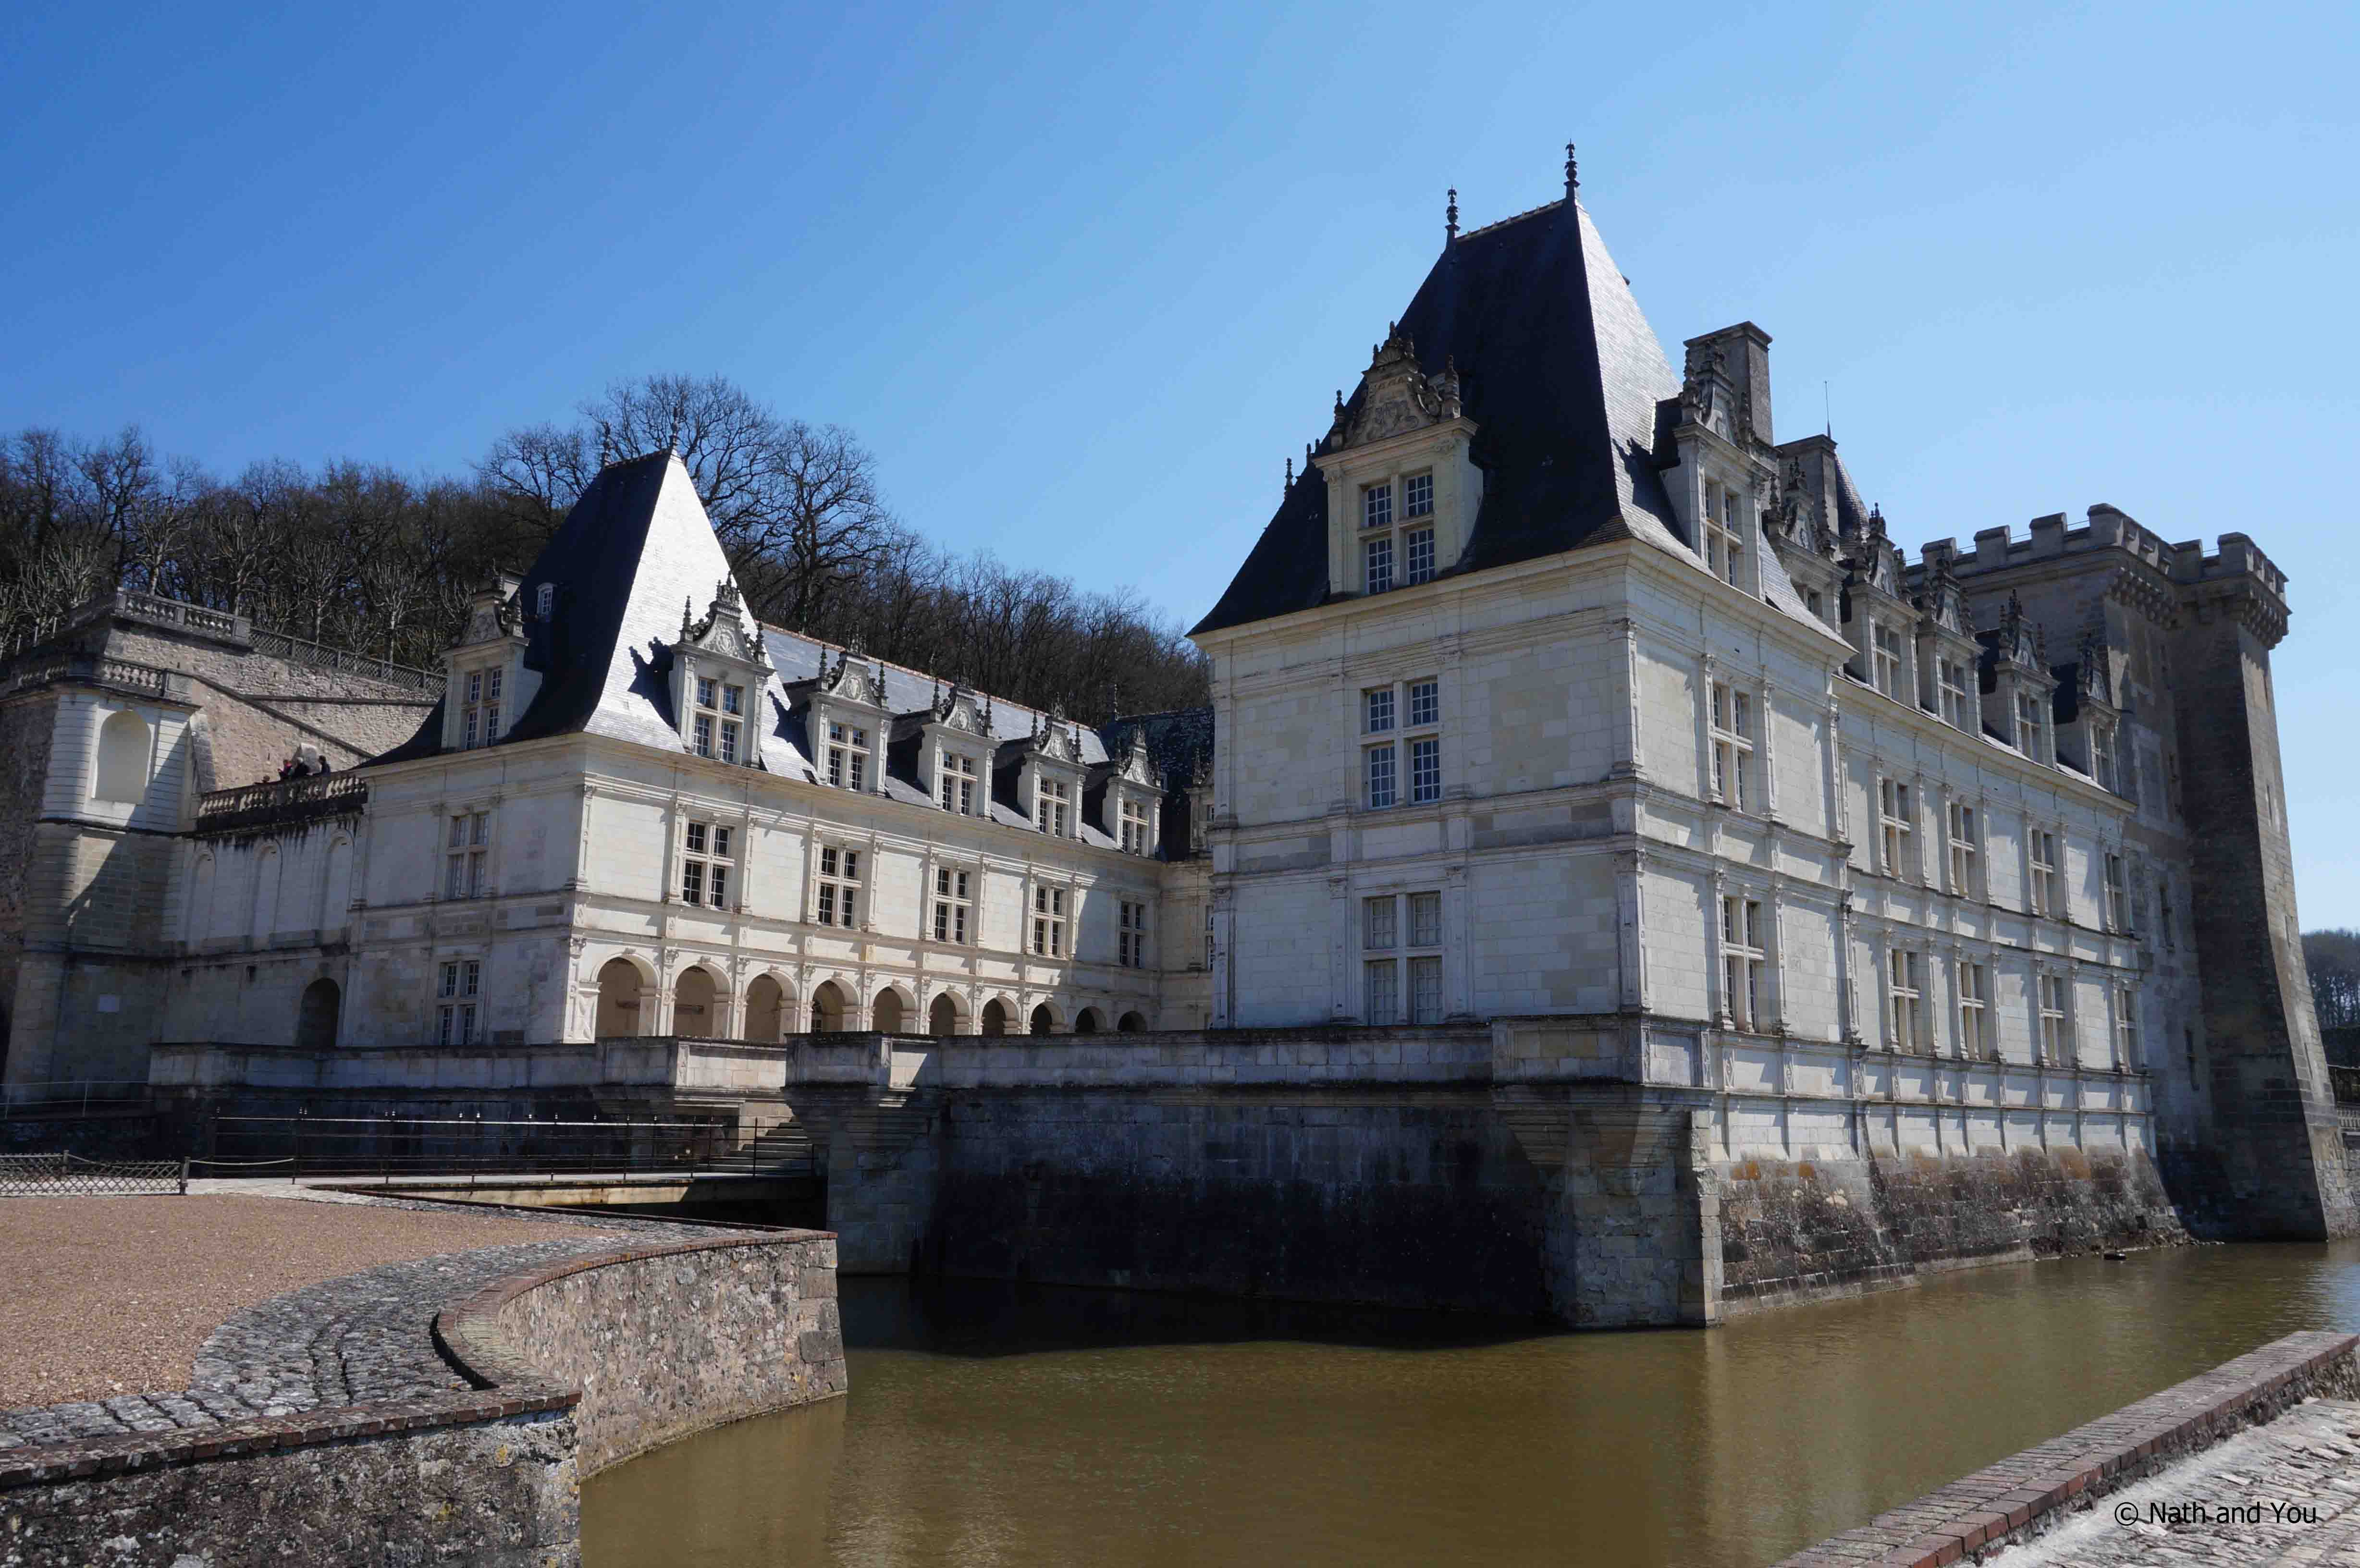 Villandry-2-Chateaux-Loire-Nath-and-you